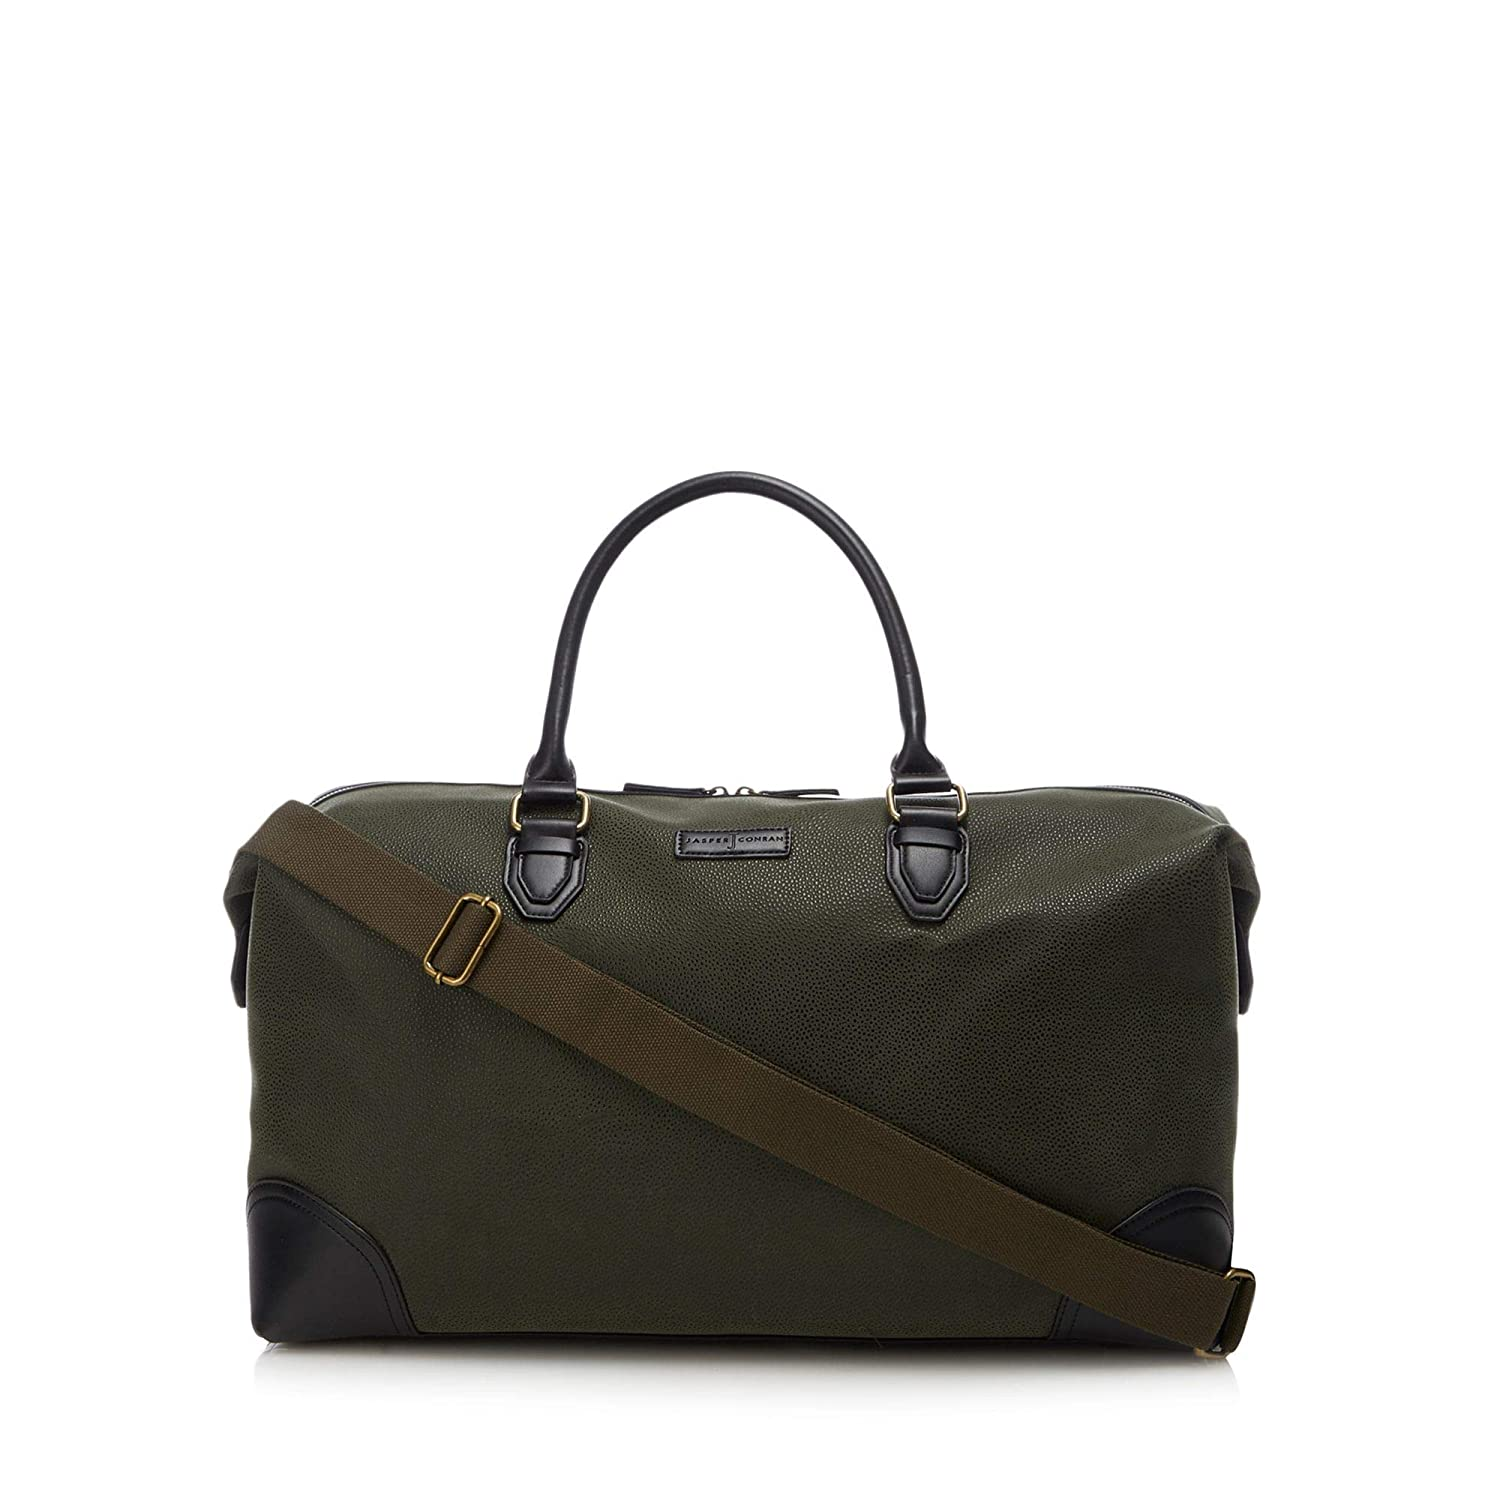 b9e74bd2b506 J By Jasper Conran Men Olive Textured Holdall Bag One Size  J by Jasper  Conran  Amazon.co.uk  Clothing